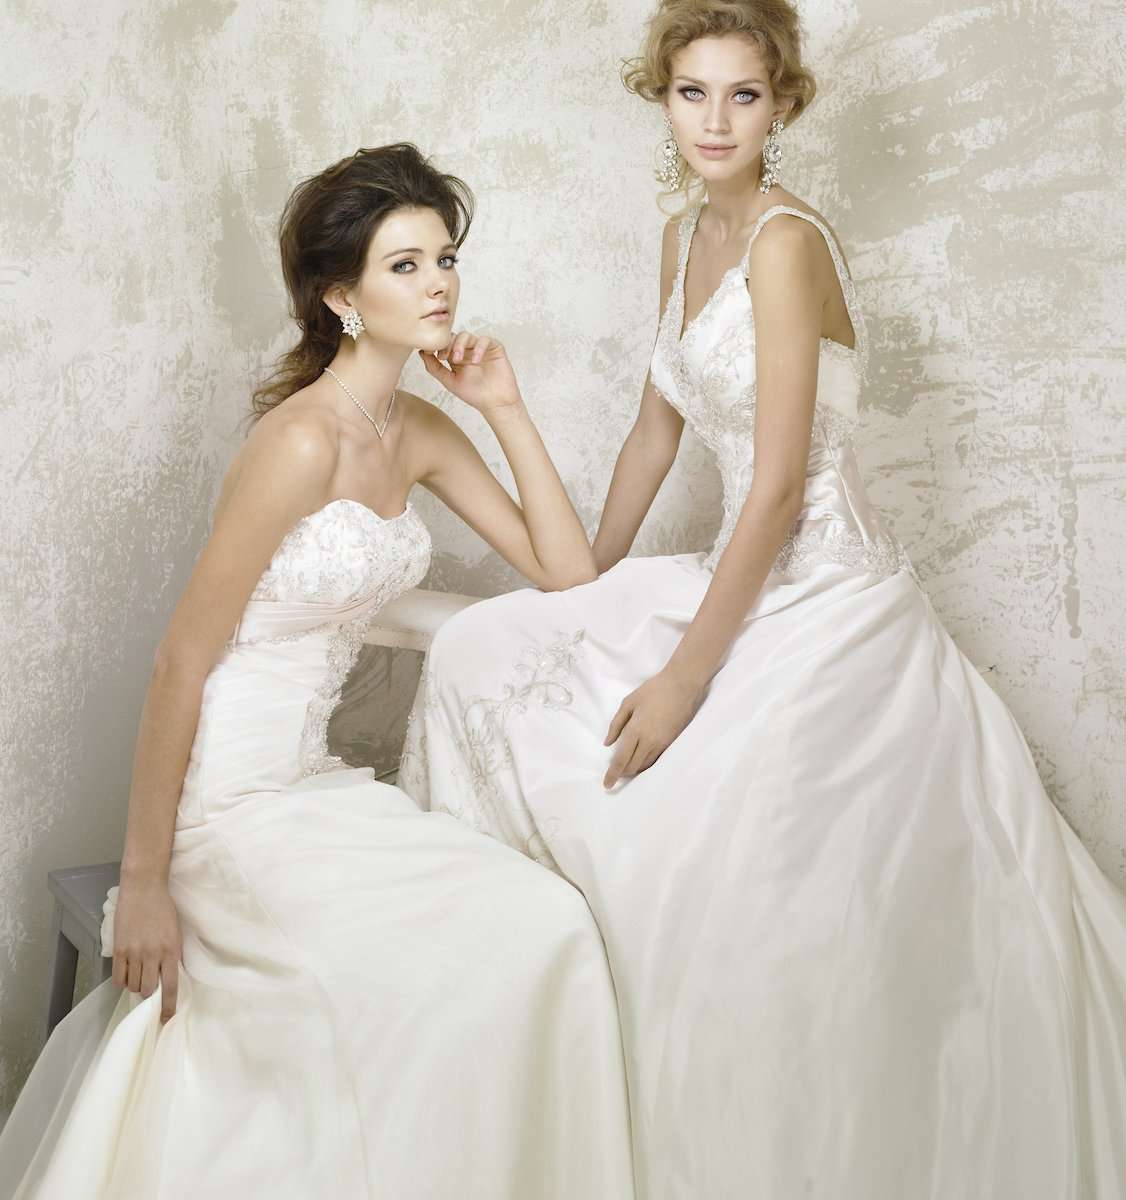 Photograph of two models wearing wedding gowns, by AsiaPhoto photographer Lance Lee.